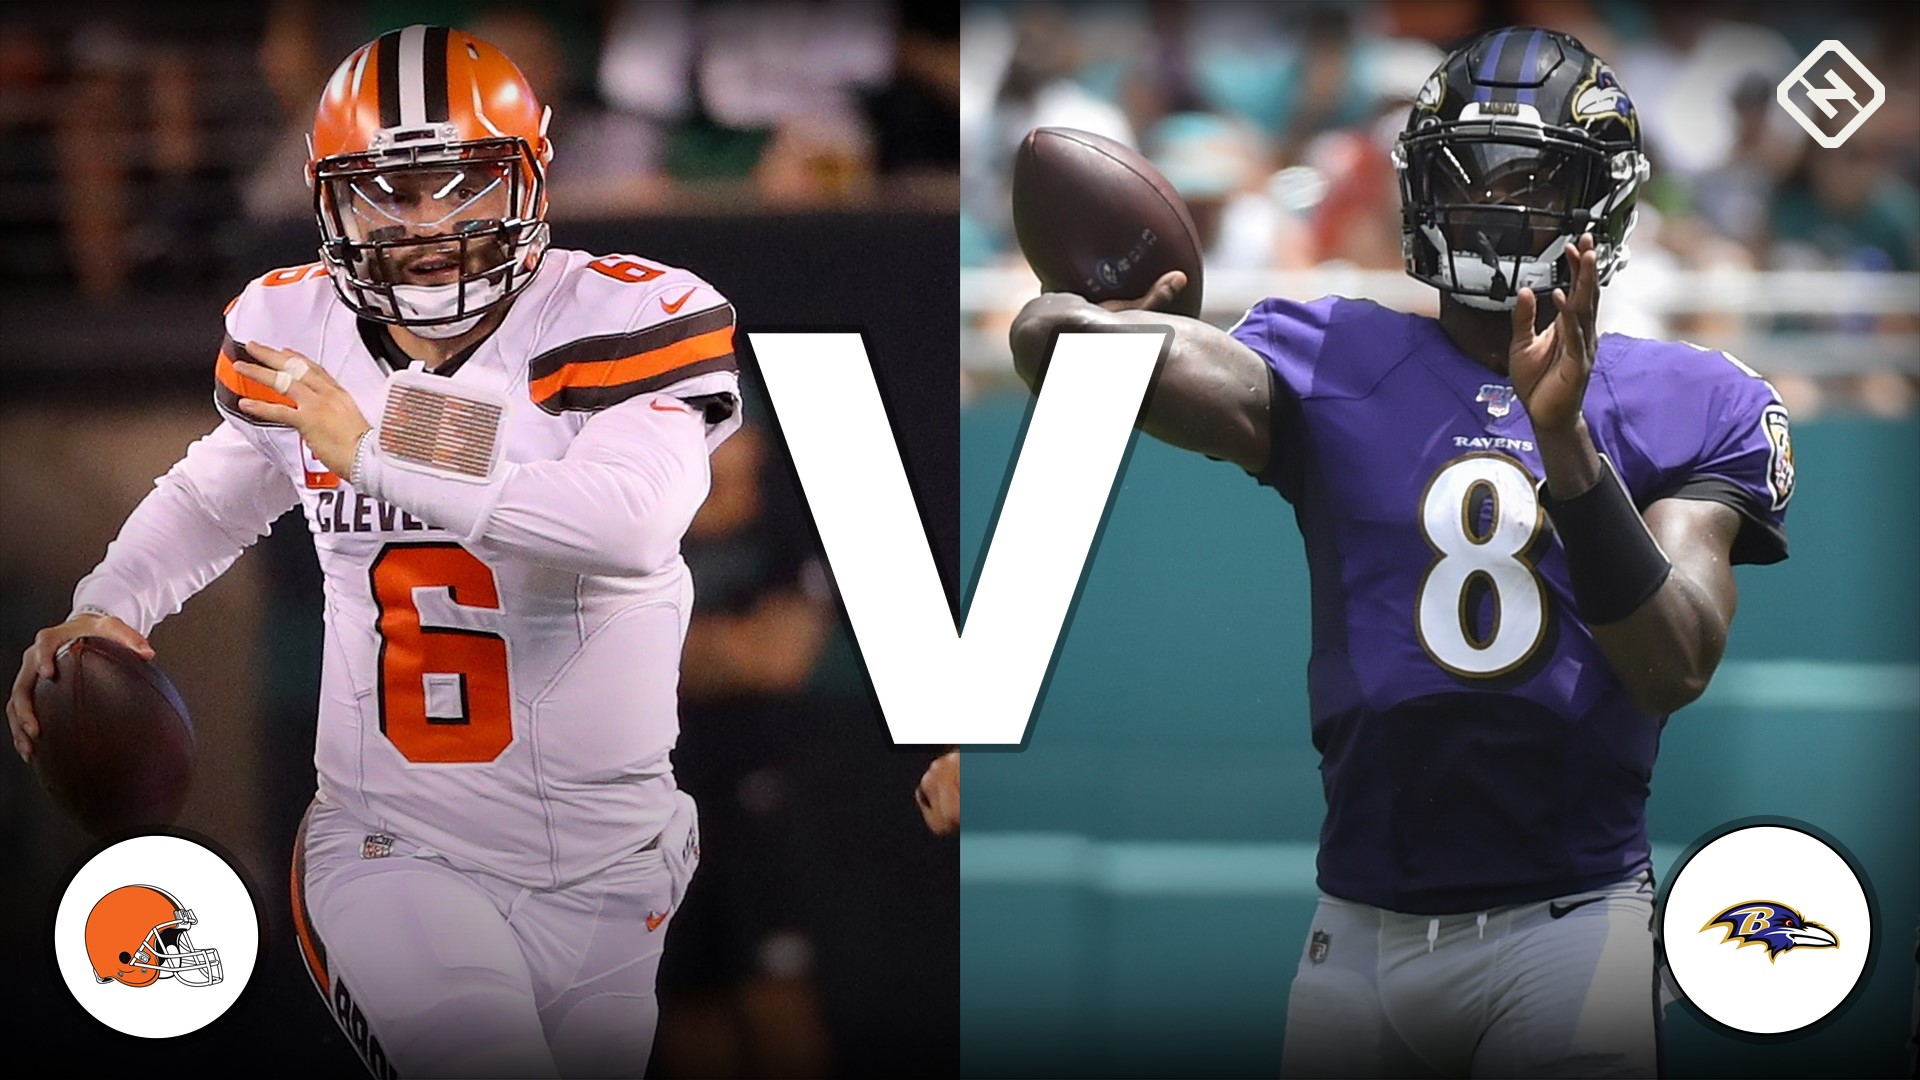 Browns vs. Ravens odds, prediction, betting trends for NFL's 'Monday Night Football' game